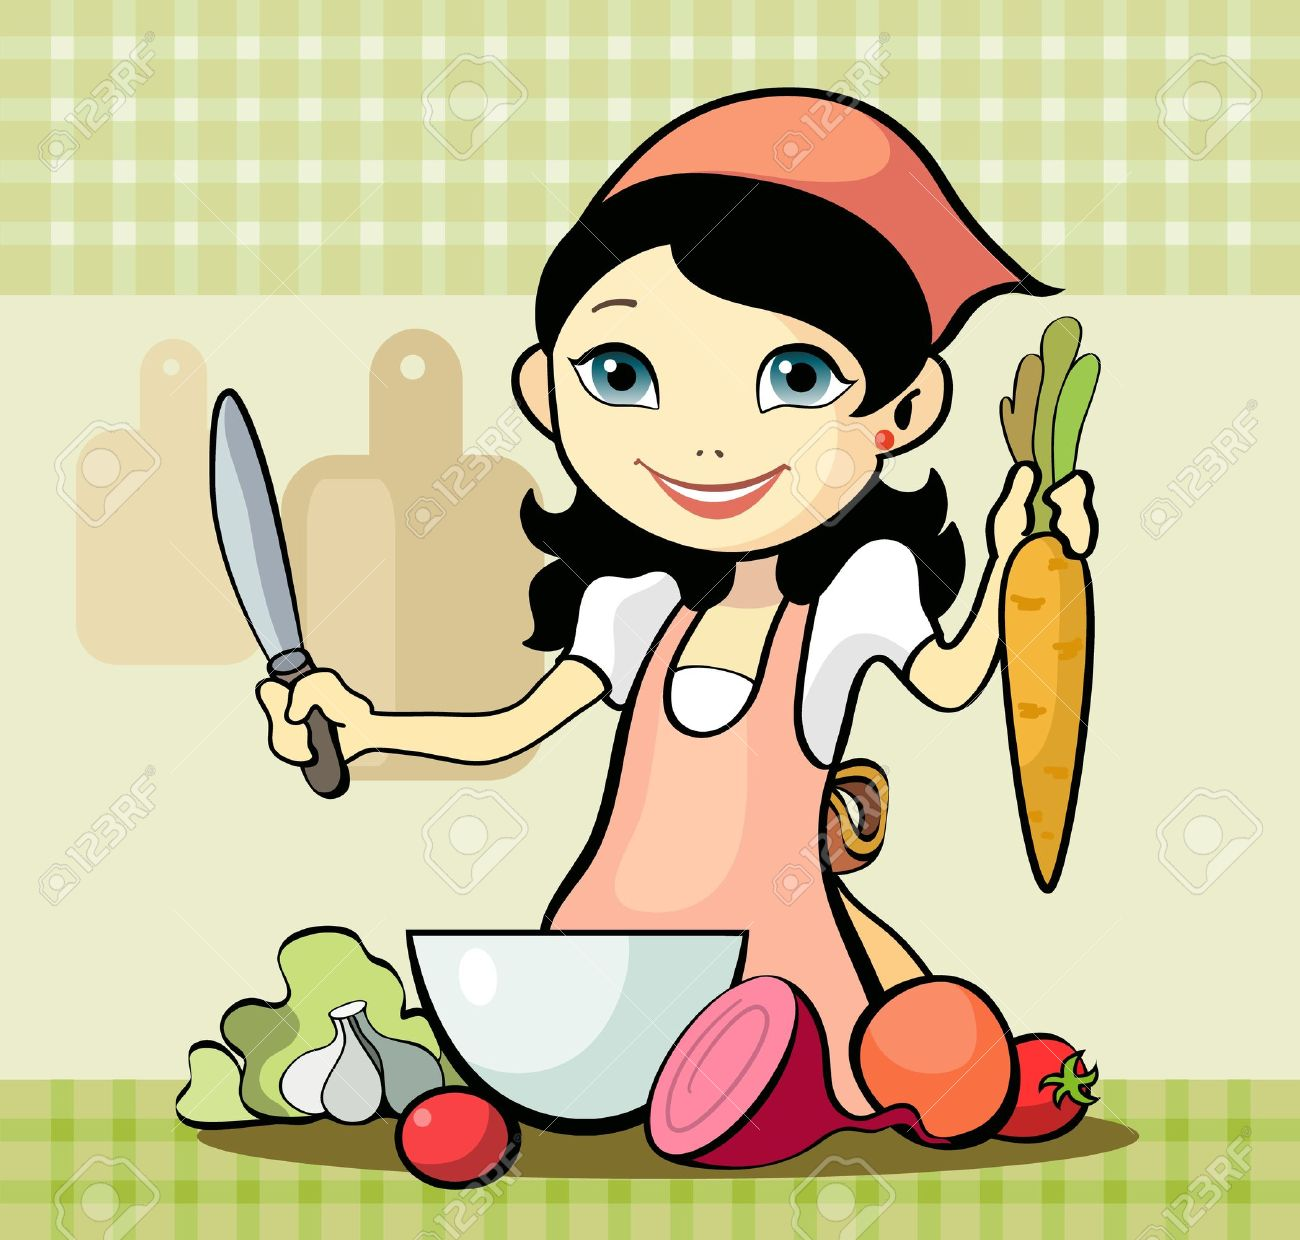 13548347-Vector-illustration-of-a-girl-prepares-a-meal-Stock-Vector-cartoon-chef-cooking